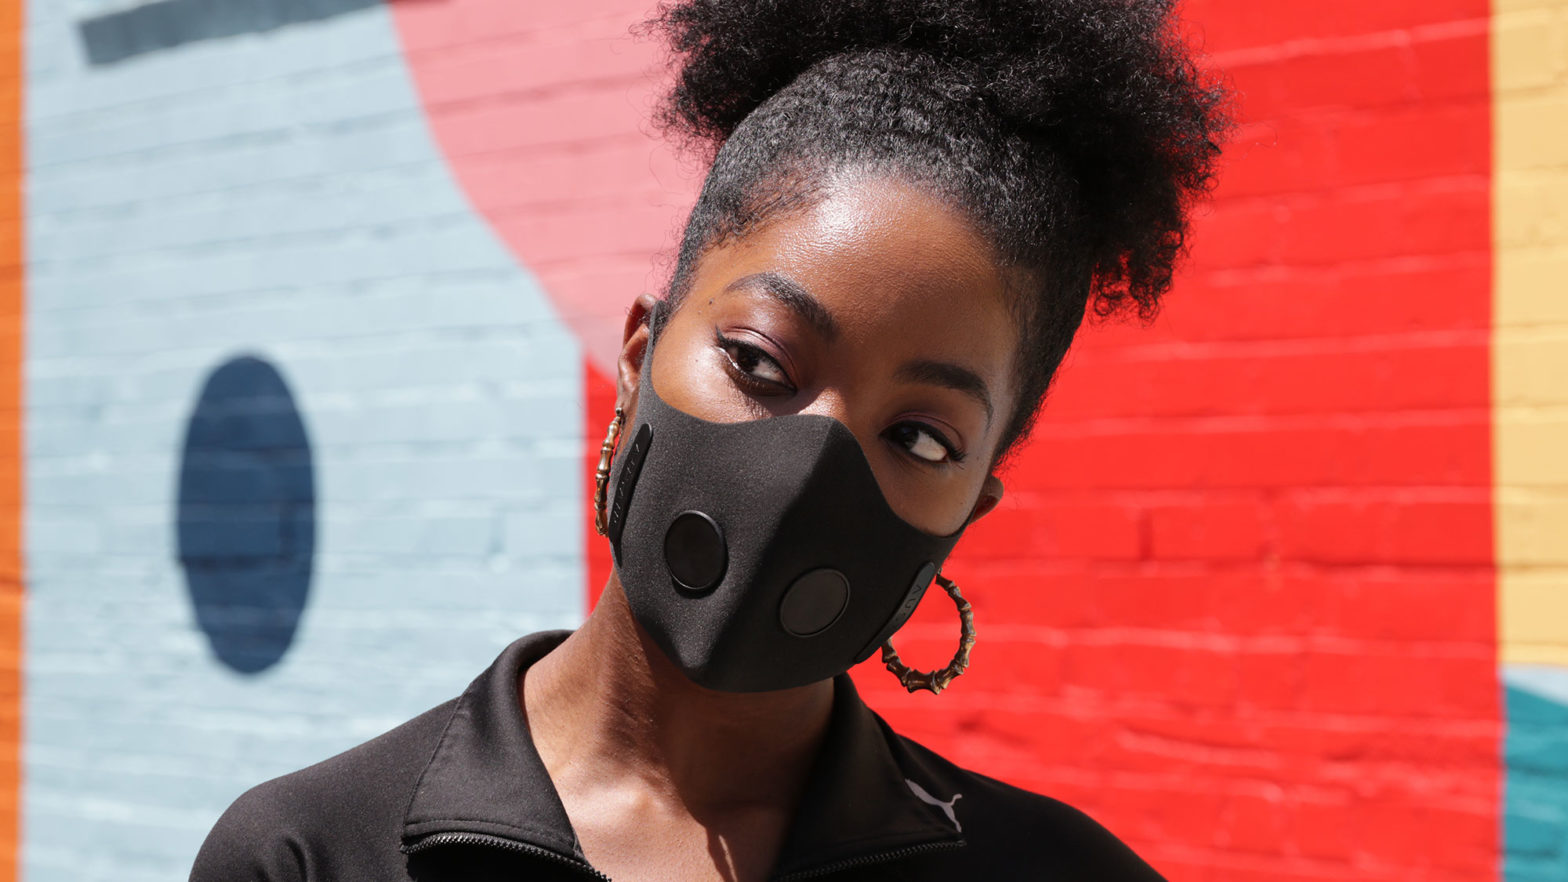 AusAir Pollution and Viral Filtration Mask